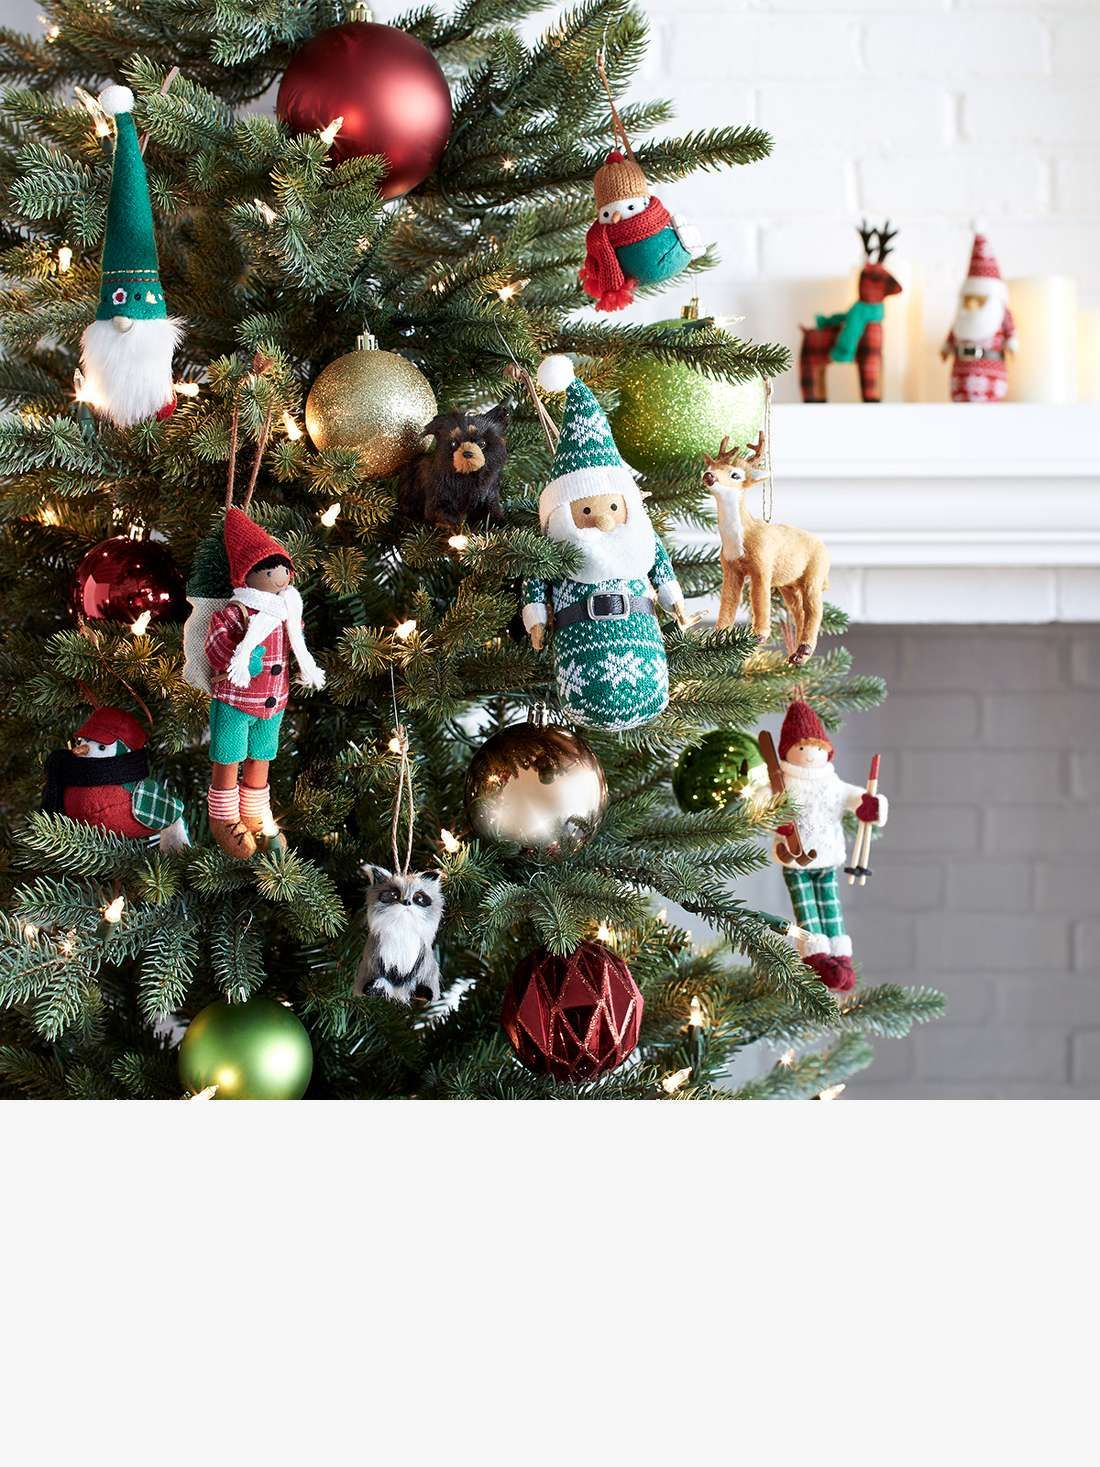 1018 Christmas Ornaments Tree Decorations Ornament Kit Toymaker139875 180924 1537833339879 1 Christmas Tree Ideas 2018 Cat Christmas Ornaments Tree Decorations